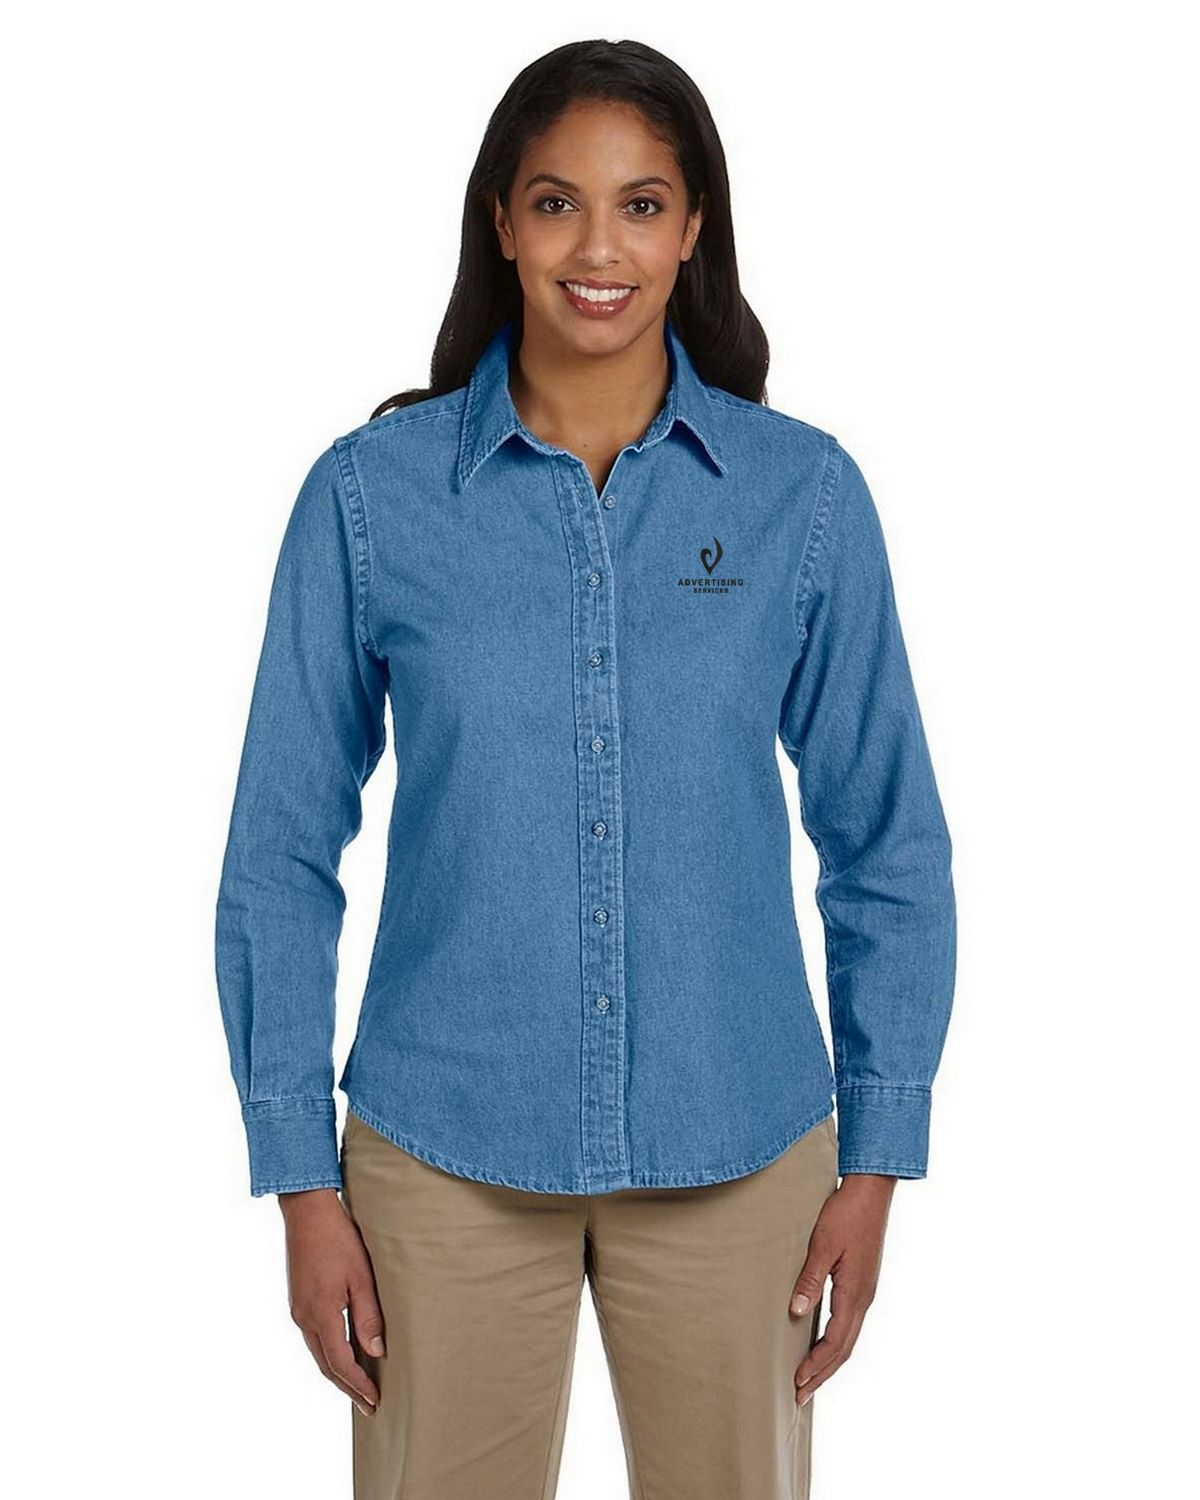 a5264cd3 Logo Embroidered Harriton M550W Ladies Long-Sleeve Denim Shirt